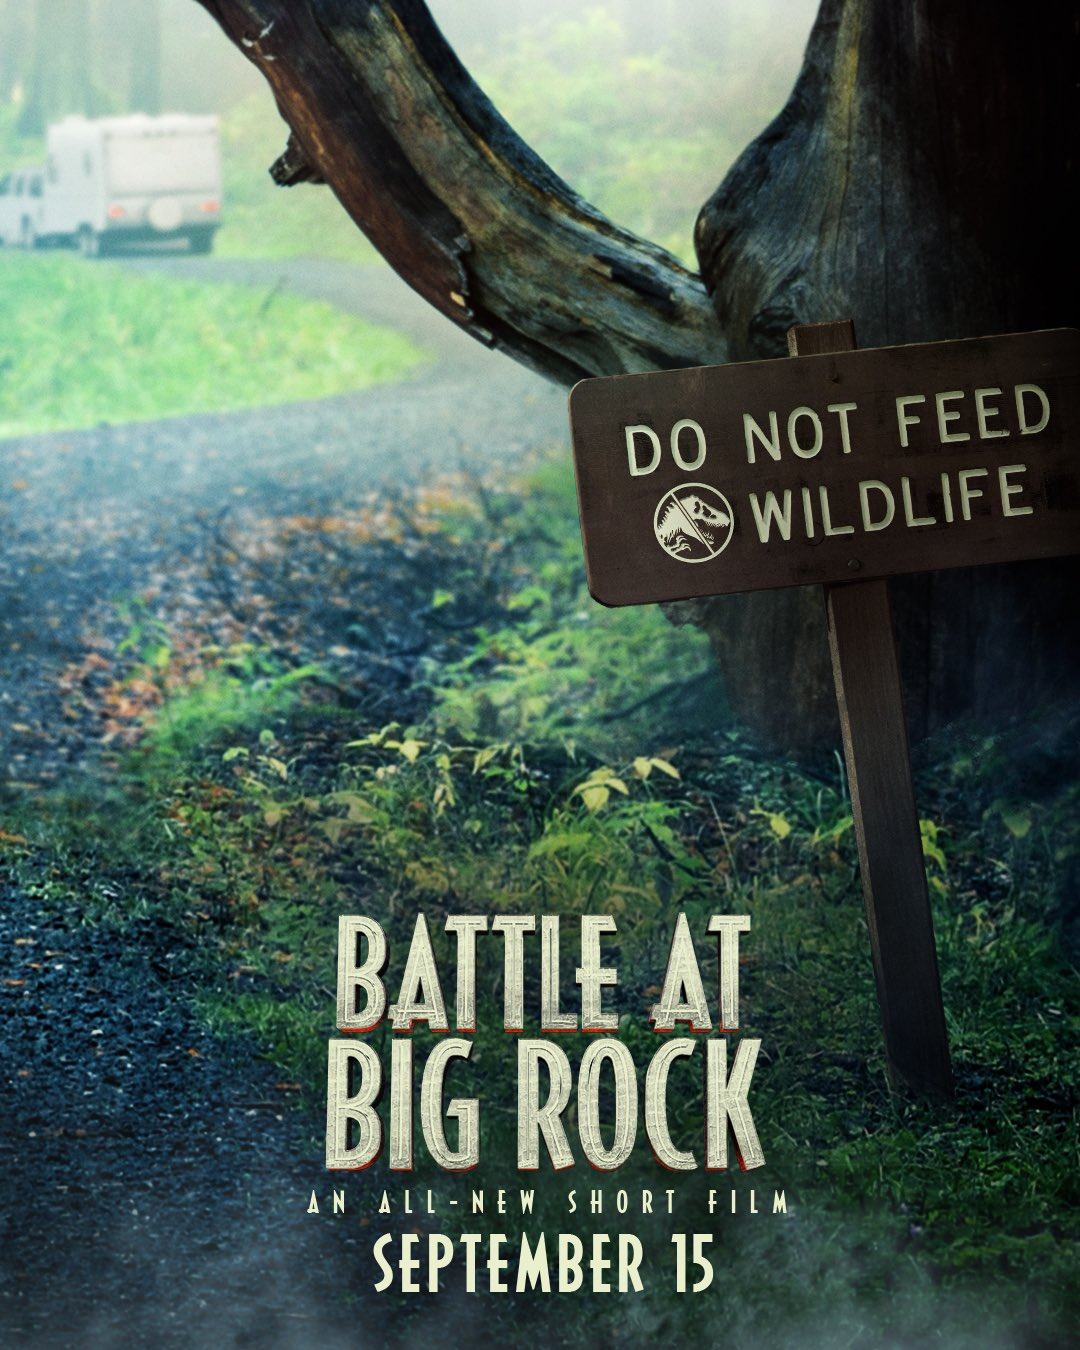 jurassic-world-battle-at-big-rock-poster.jpeg